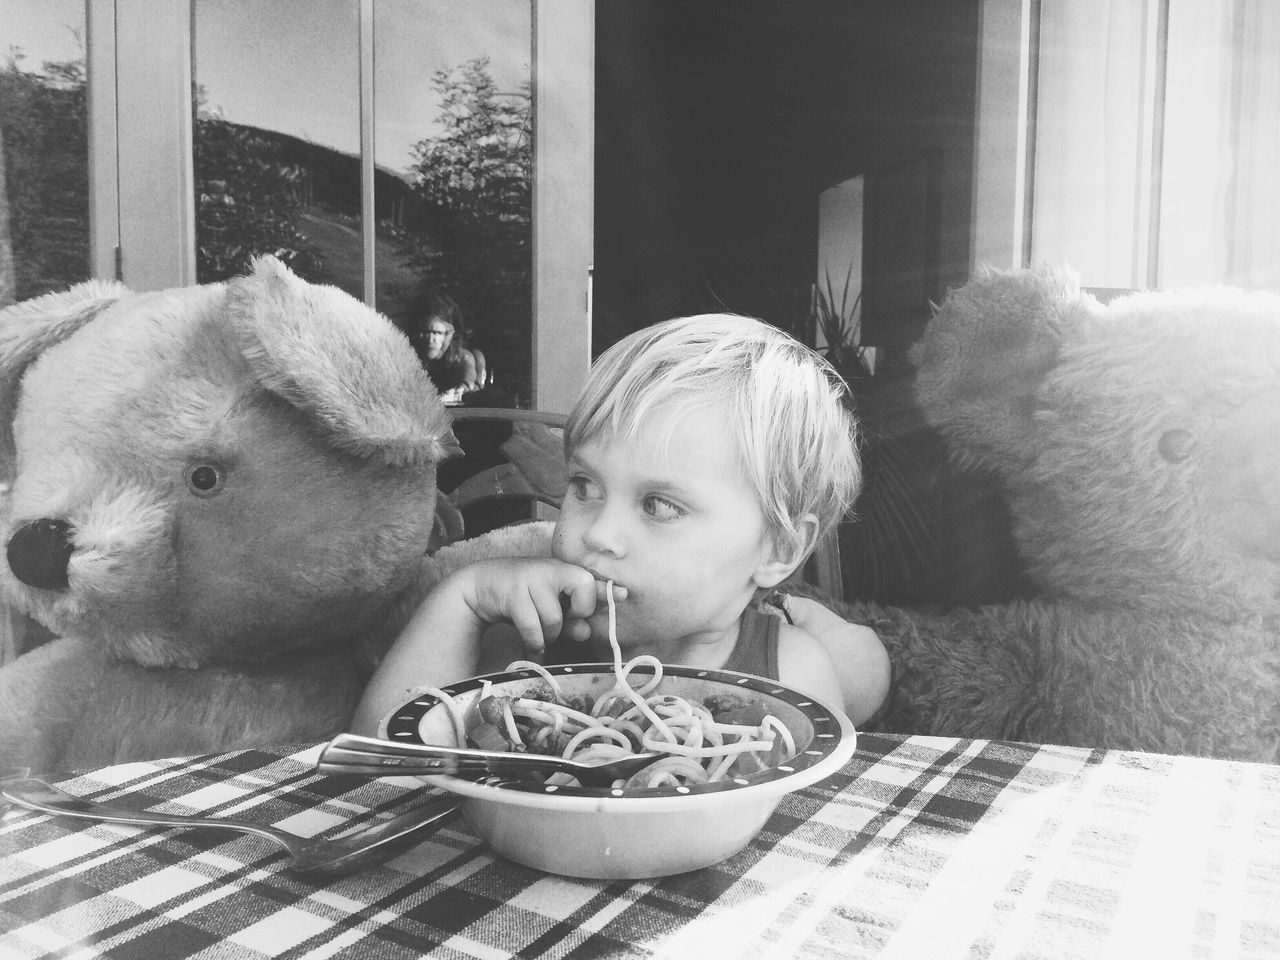 A real life teddy bear picnic Pets Animal Themes One Person Food And Drink Portrait Healthy Eating Home Exterior Teddy Bear Teddy Bear Picnic Preschooler Looking Away From Camera Black And White Childhood Day Food Real People Close-up